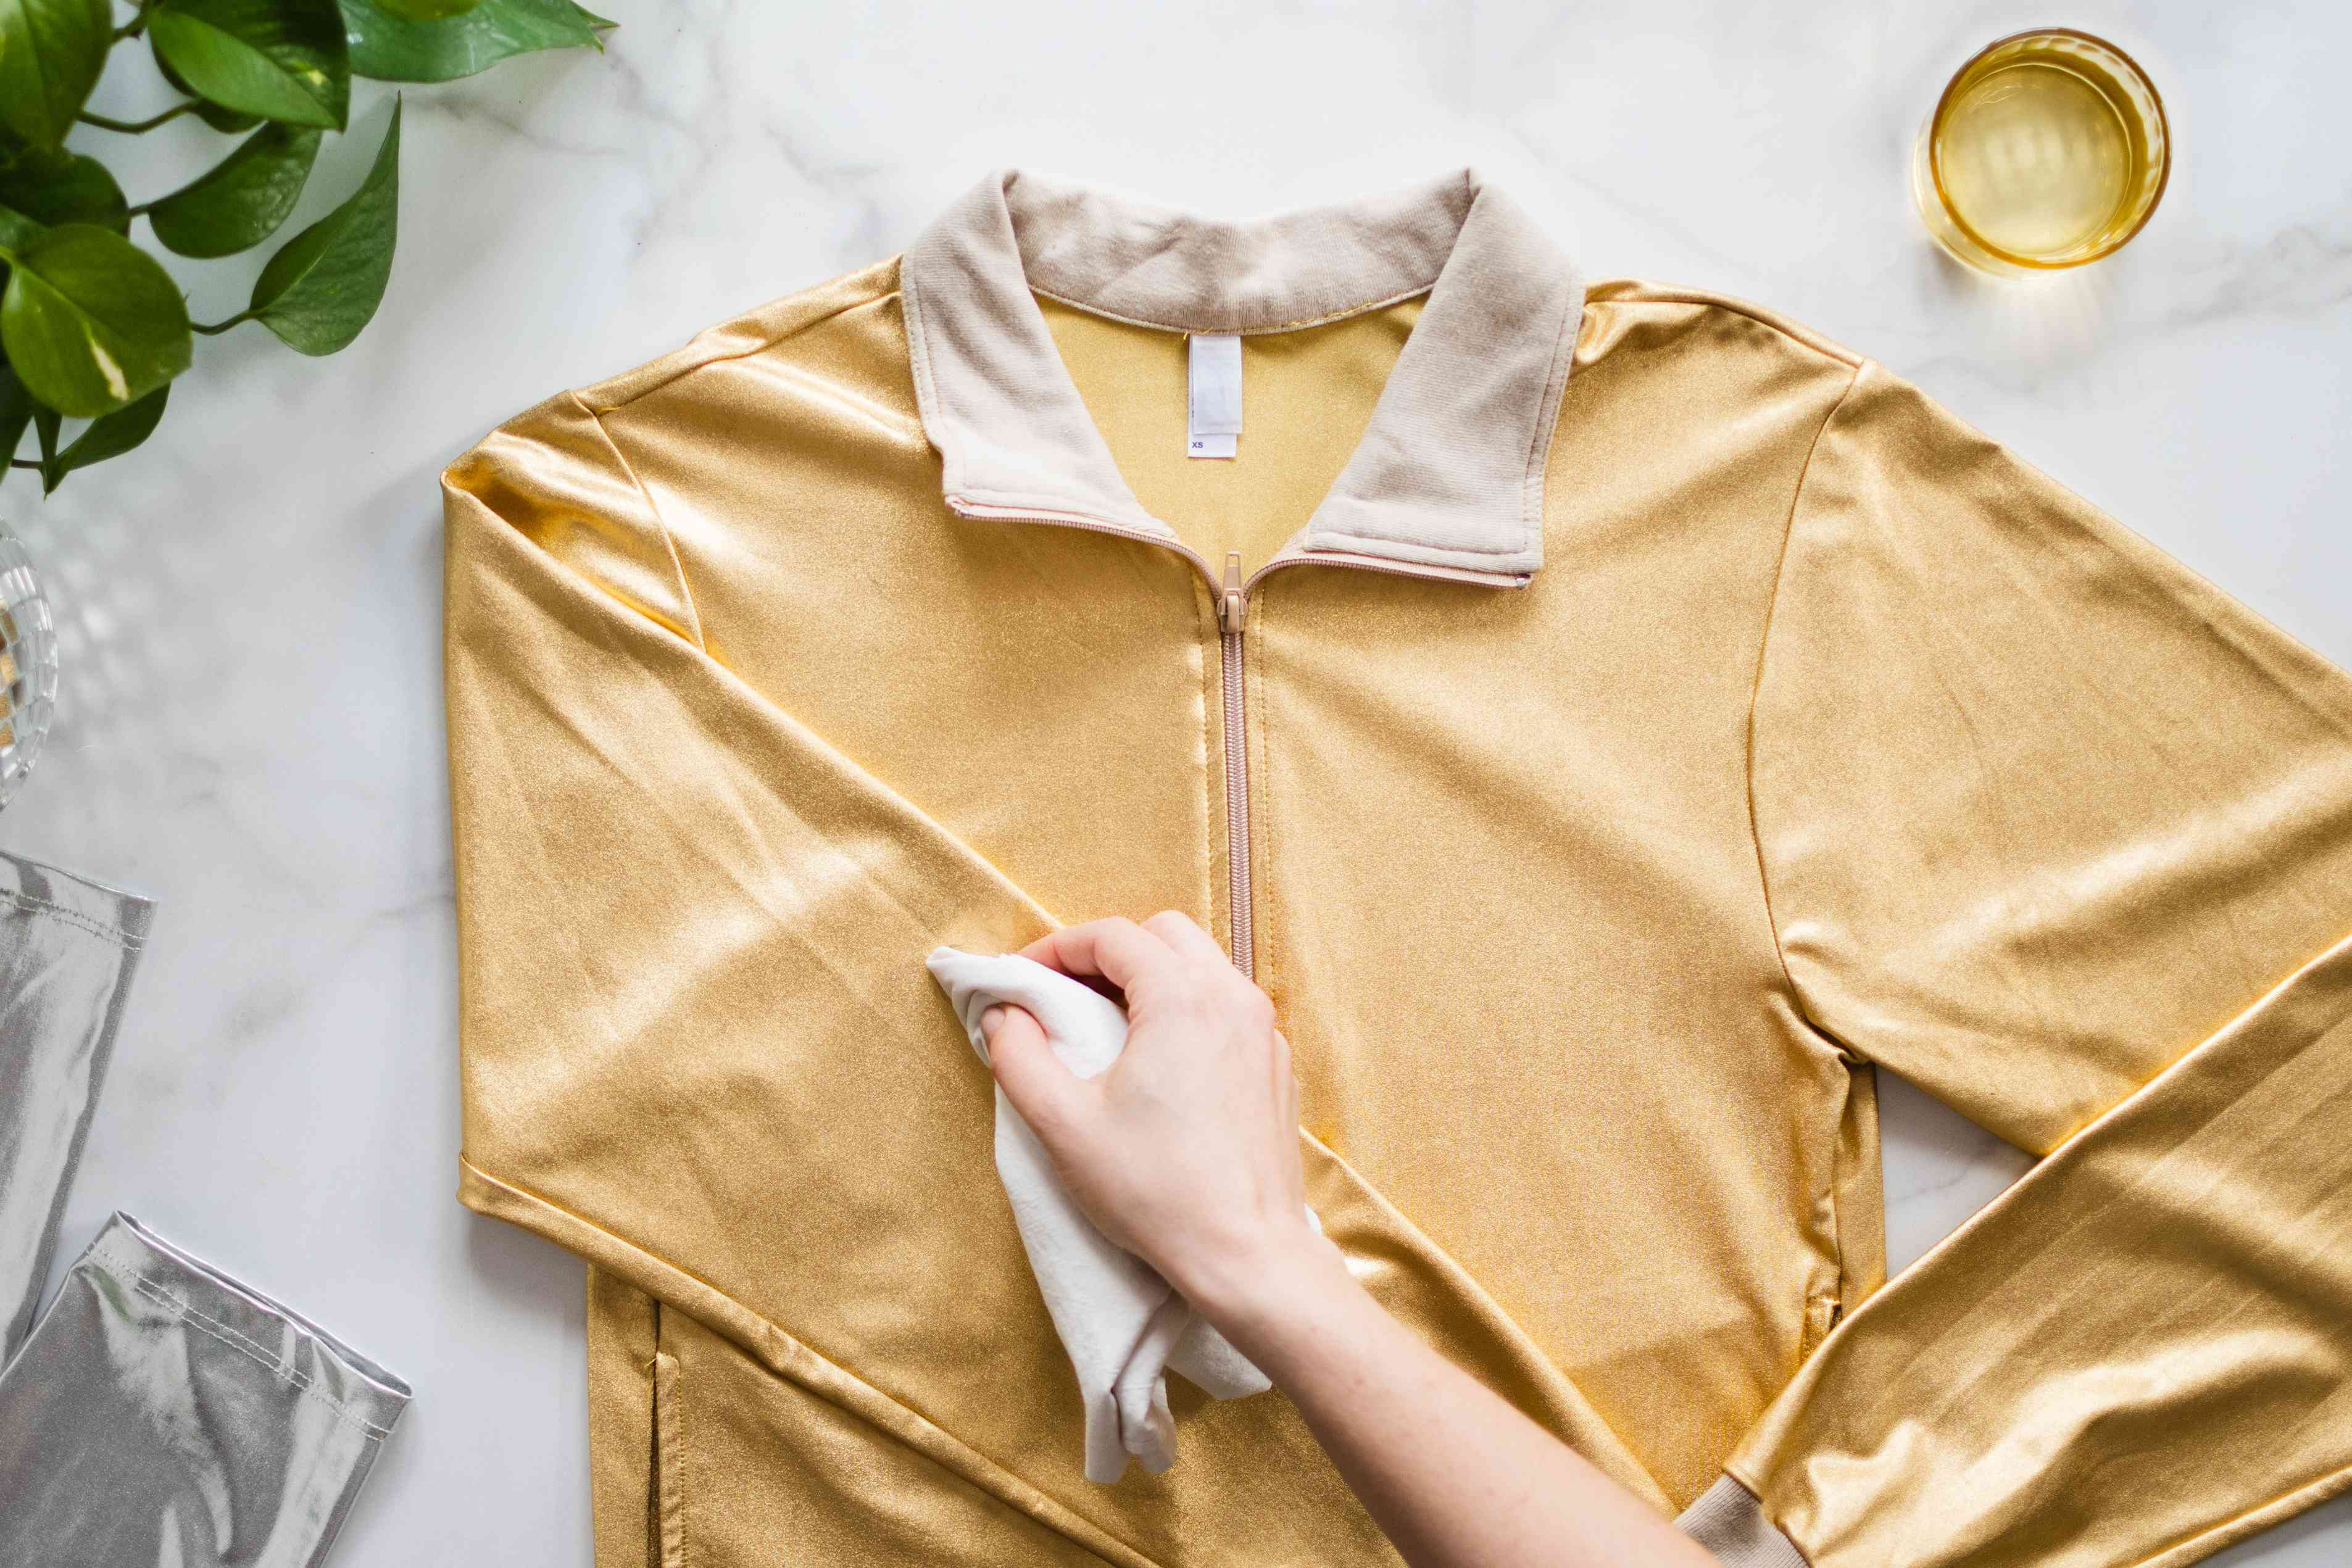 Stain blotted by white towel on left sleeve of yellow metallic jacket